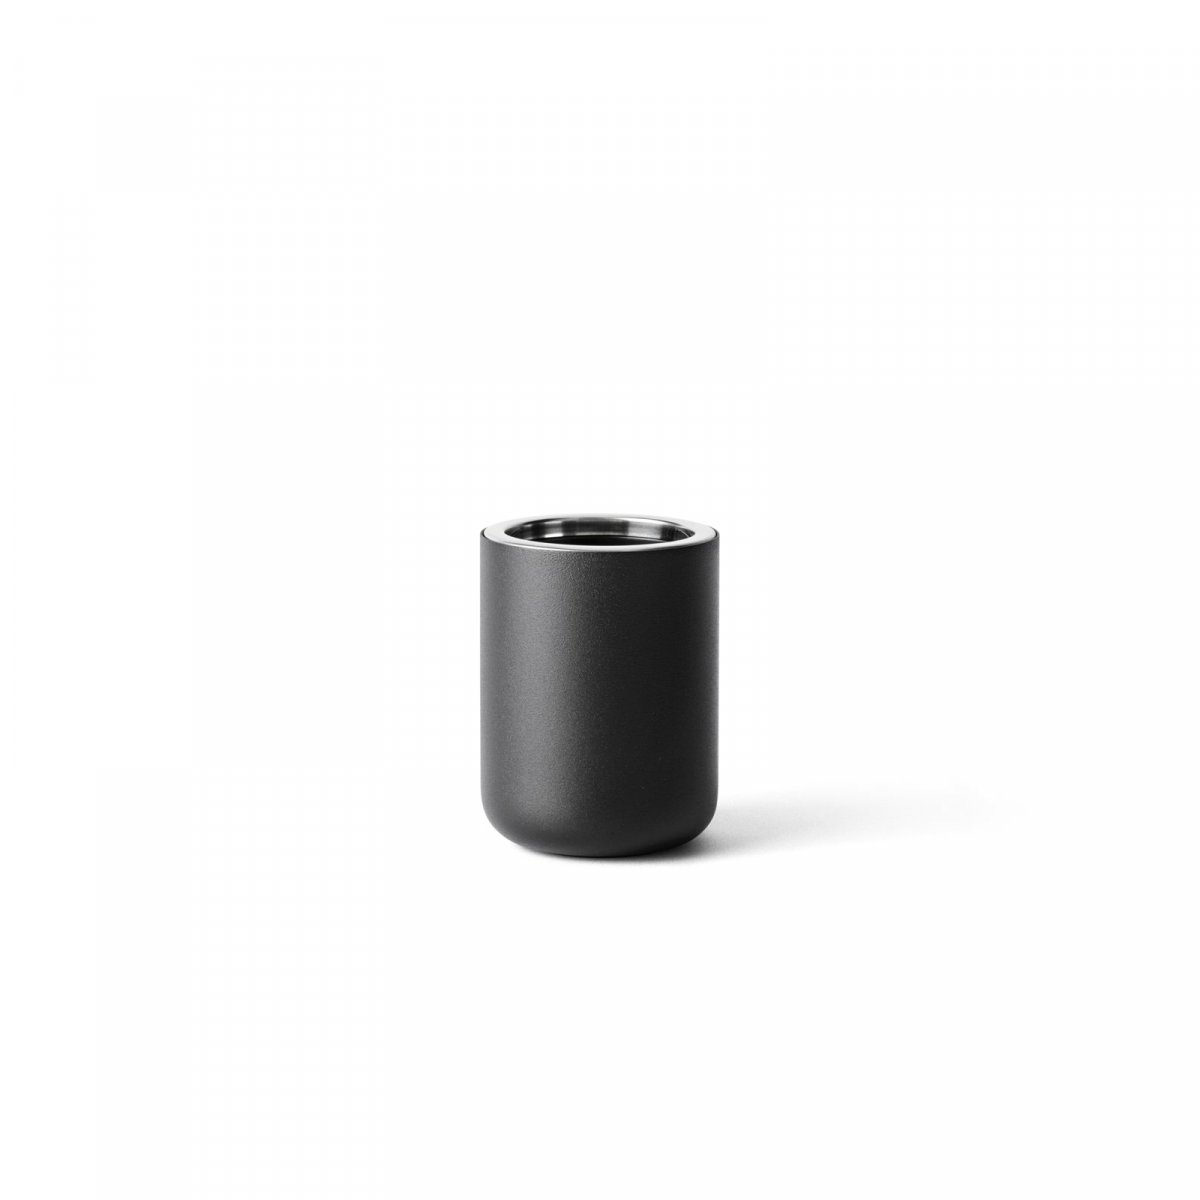 Toothbrush Holder, black.